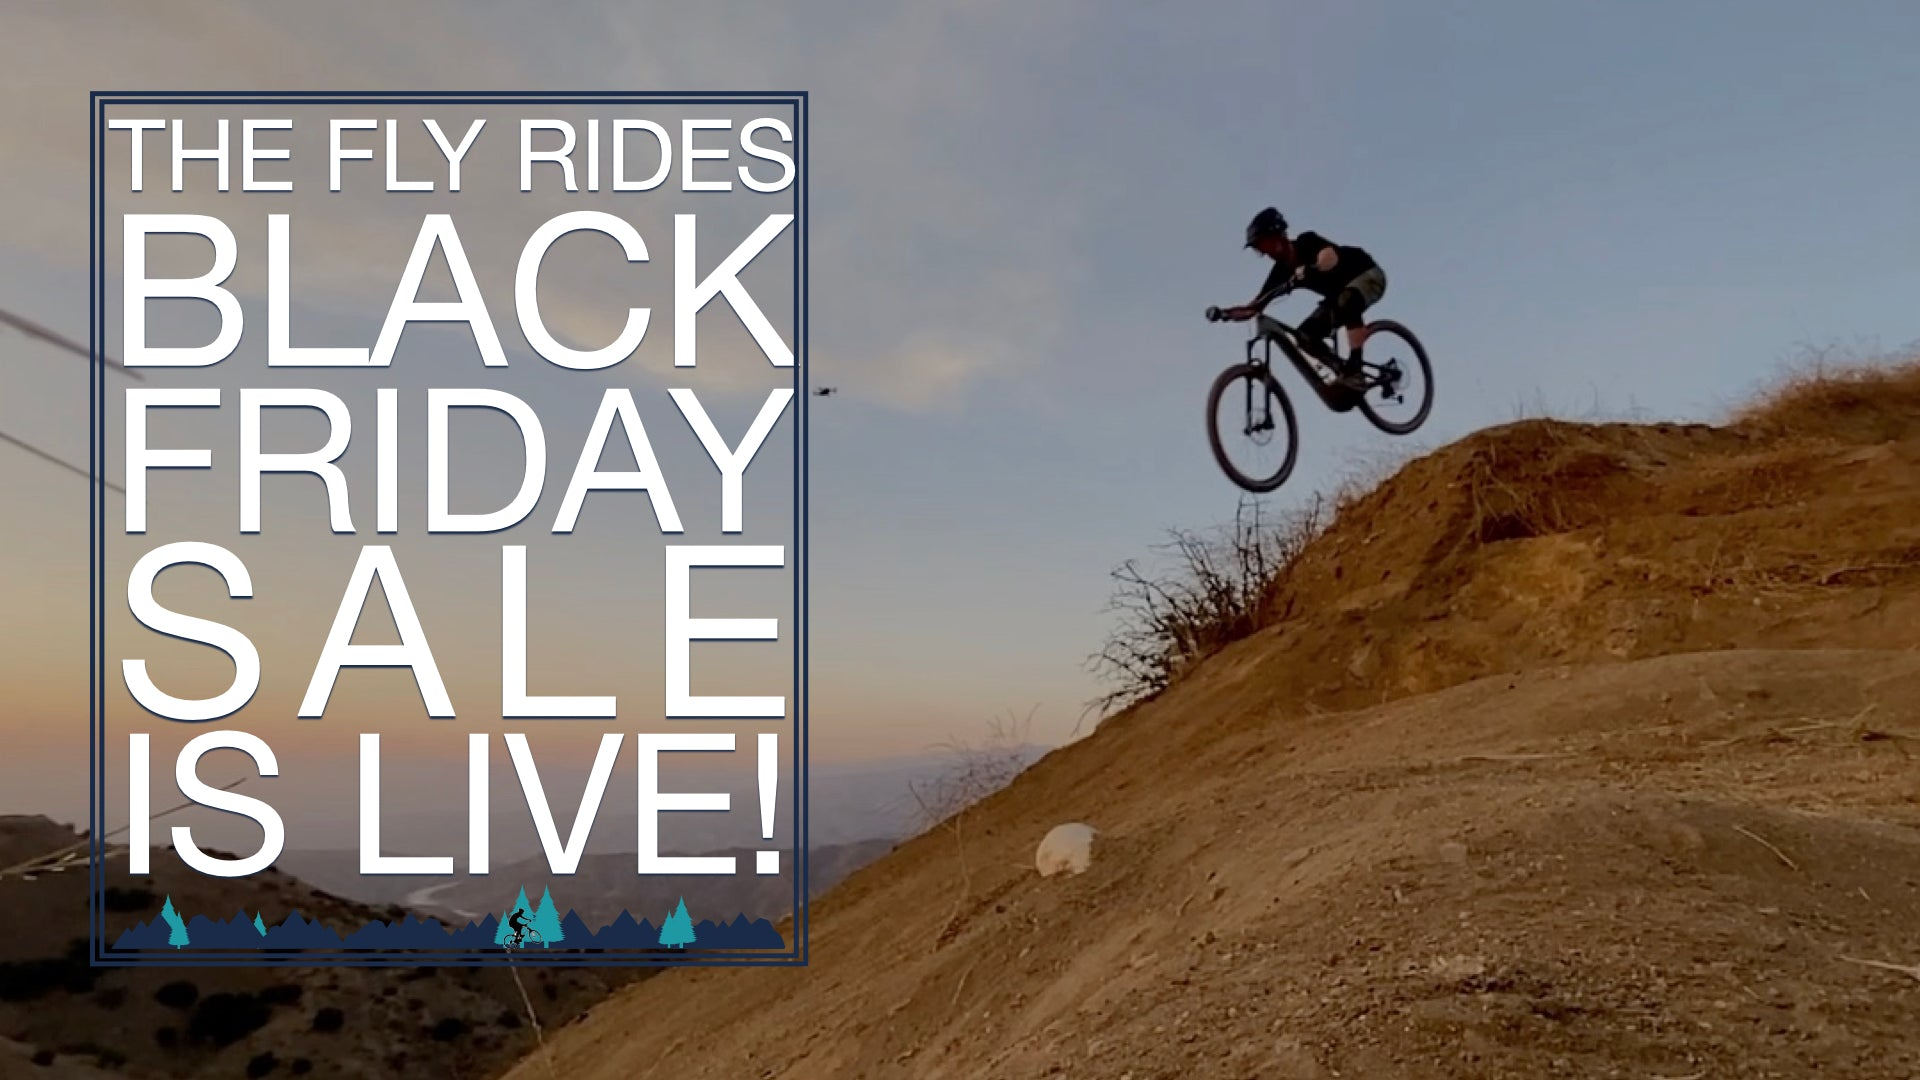 Fly Rides Black Friday Sale 2020